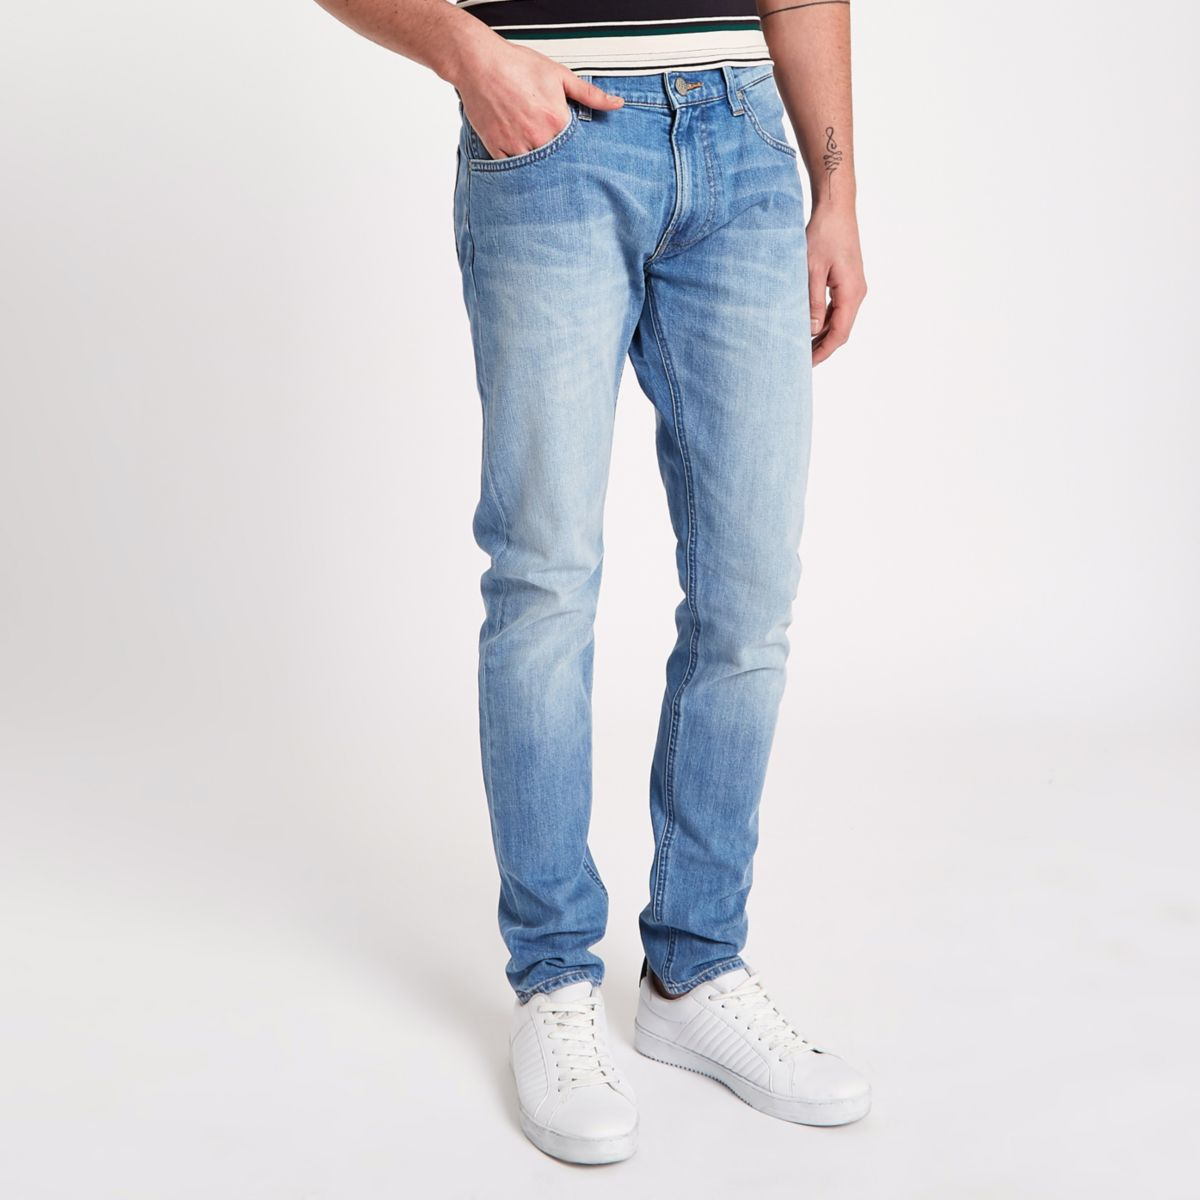 TOM FORD Straight-Fit Selvedge Harrison Wash Denim Jeans, Blue Details TOM FORD Japanese selvedge denim jeans in Harrison blue wash. Straight-fit style with slightly contoured thigh and minimal tapered leg; classic rise.